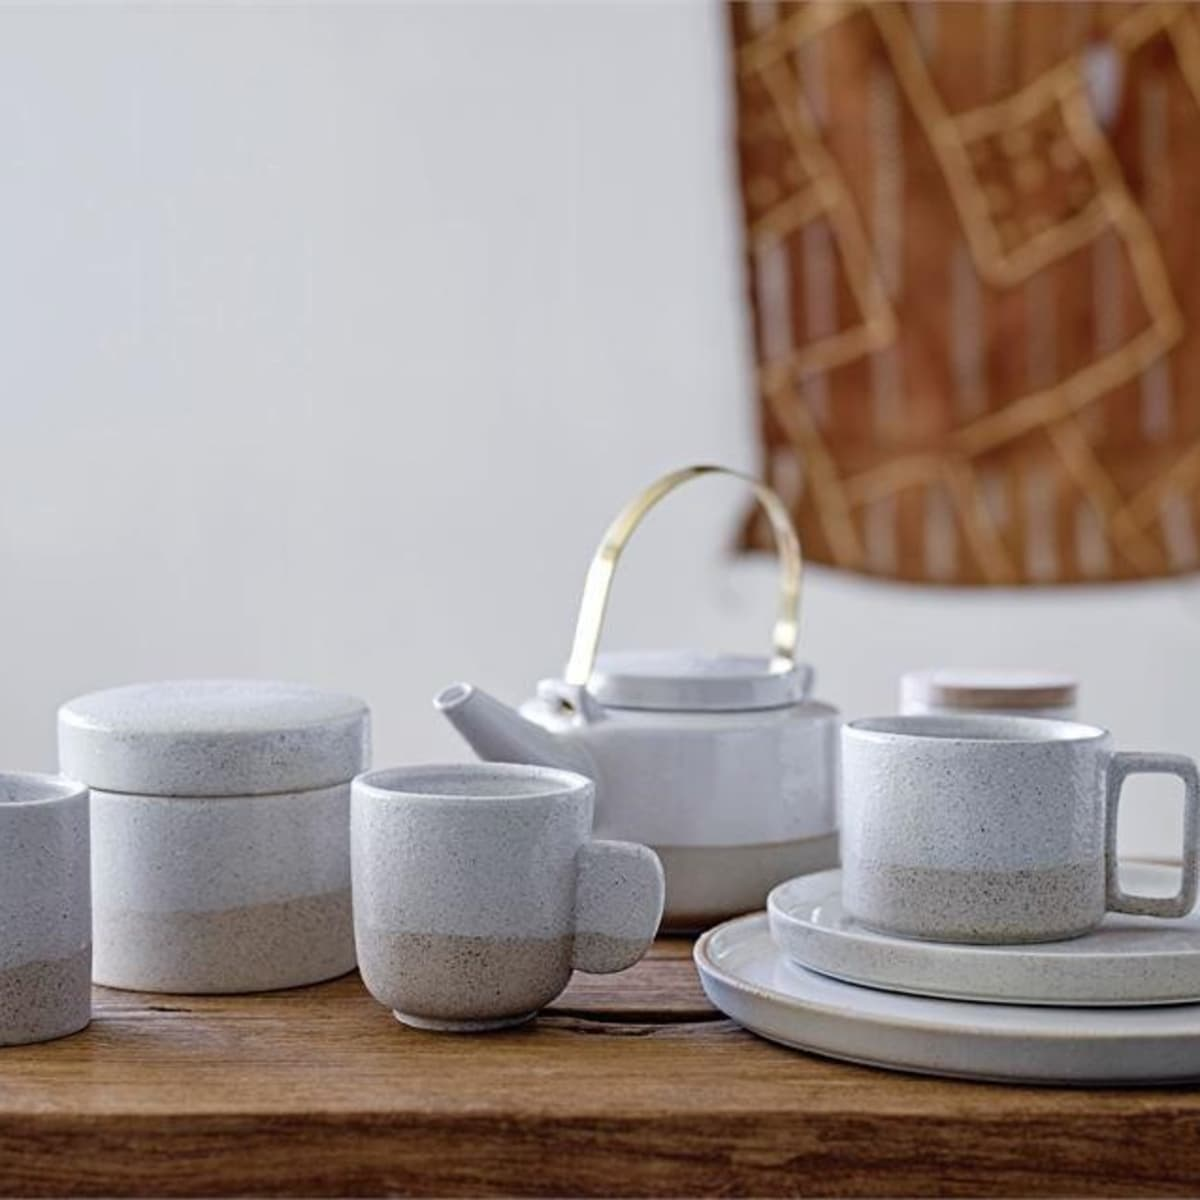 Tea set from Neighborhood, Holiday Pop-up 2017